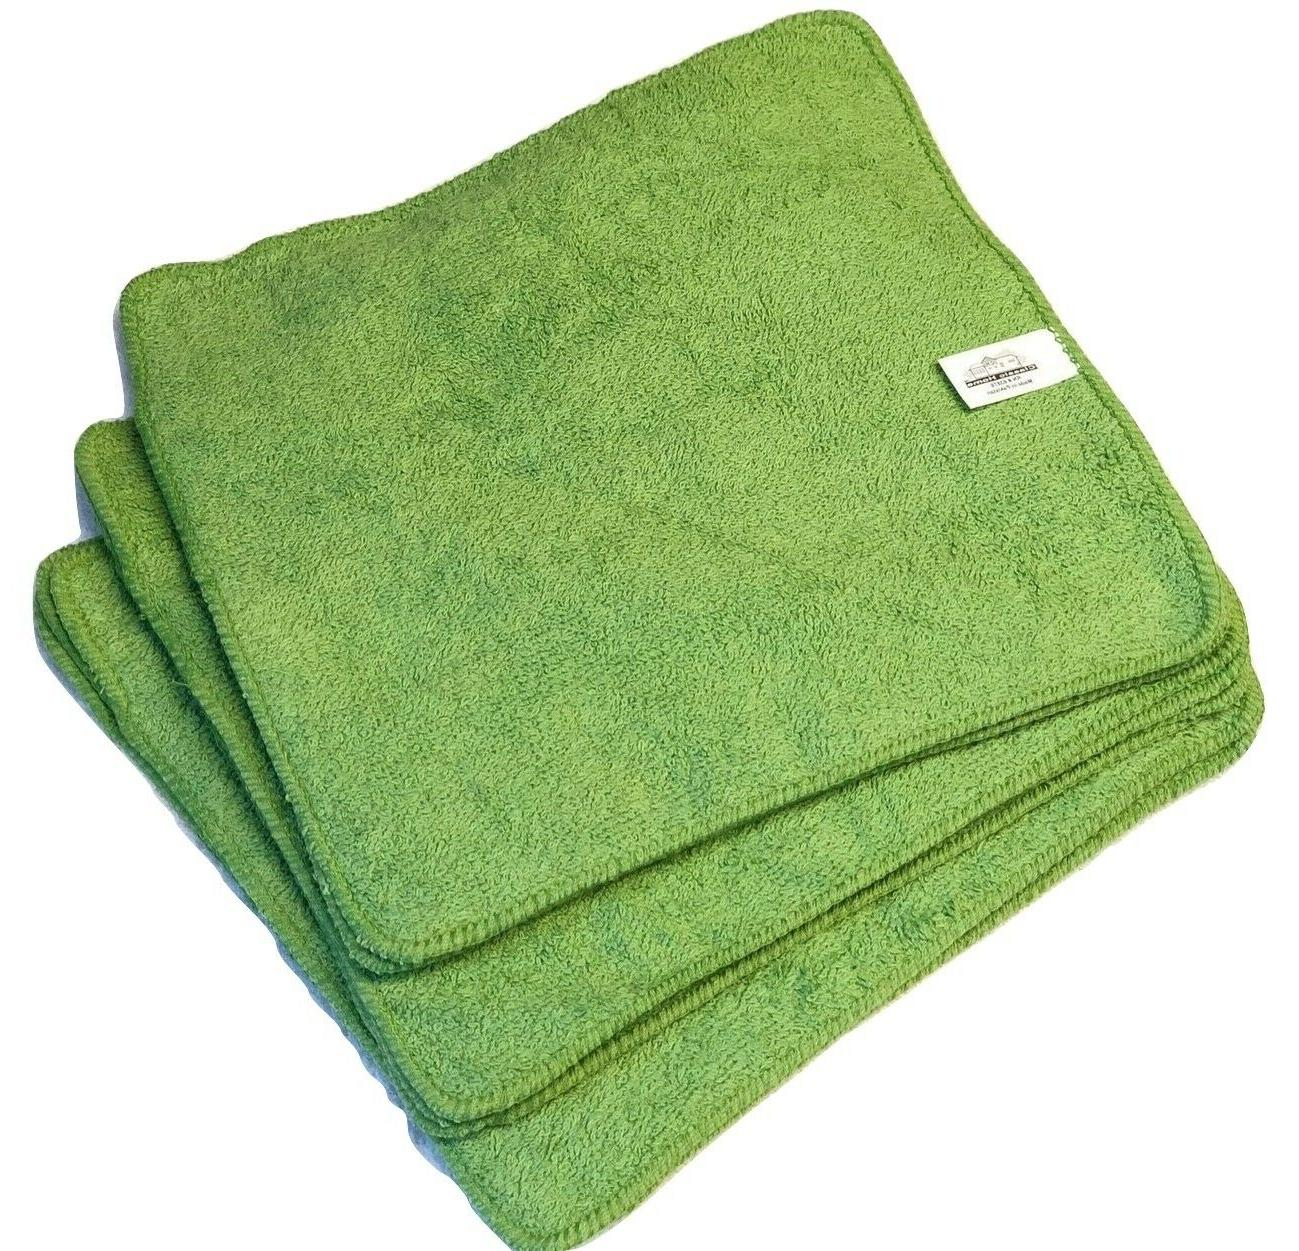 washcloth towel 24pcs 100 percent cotton hotel